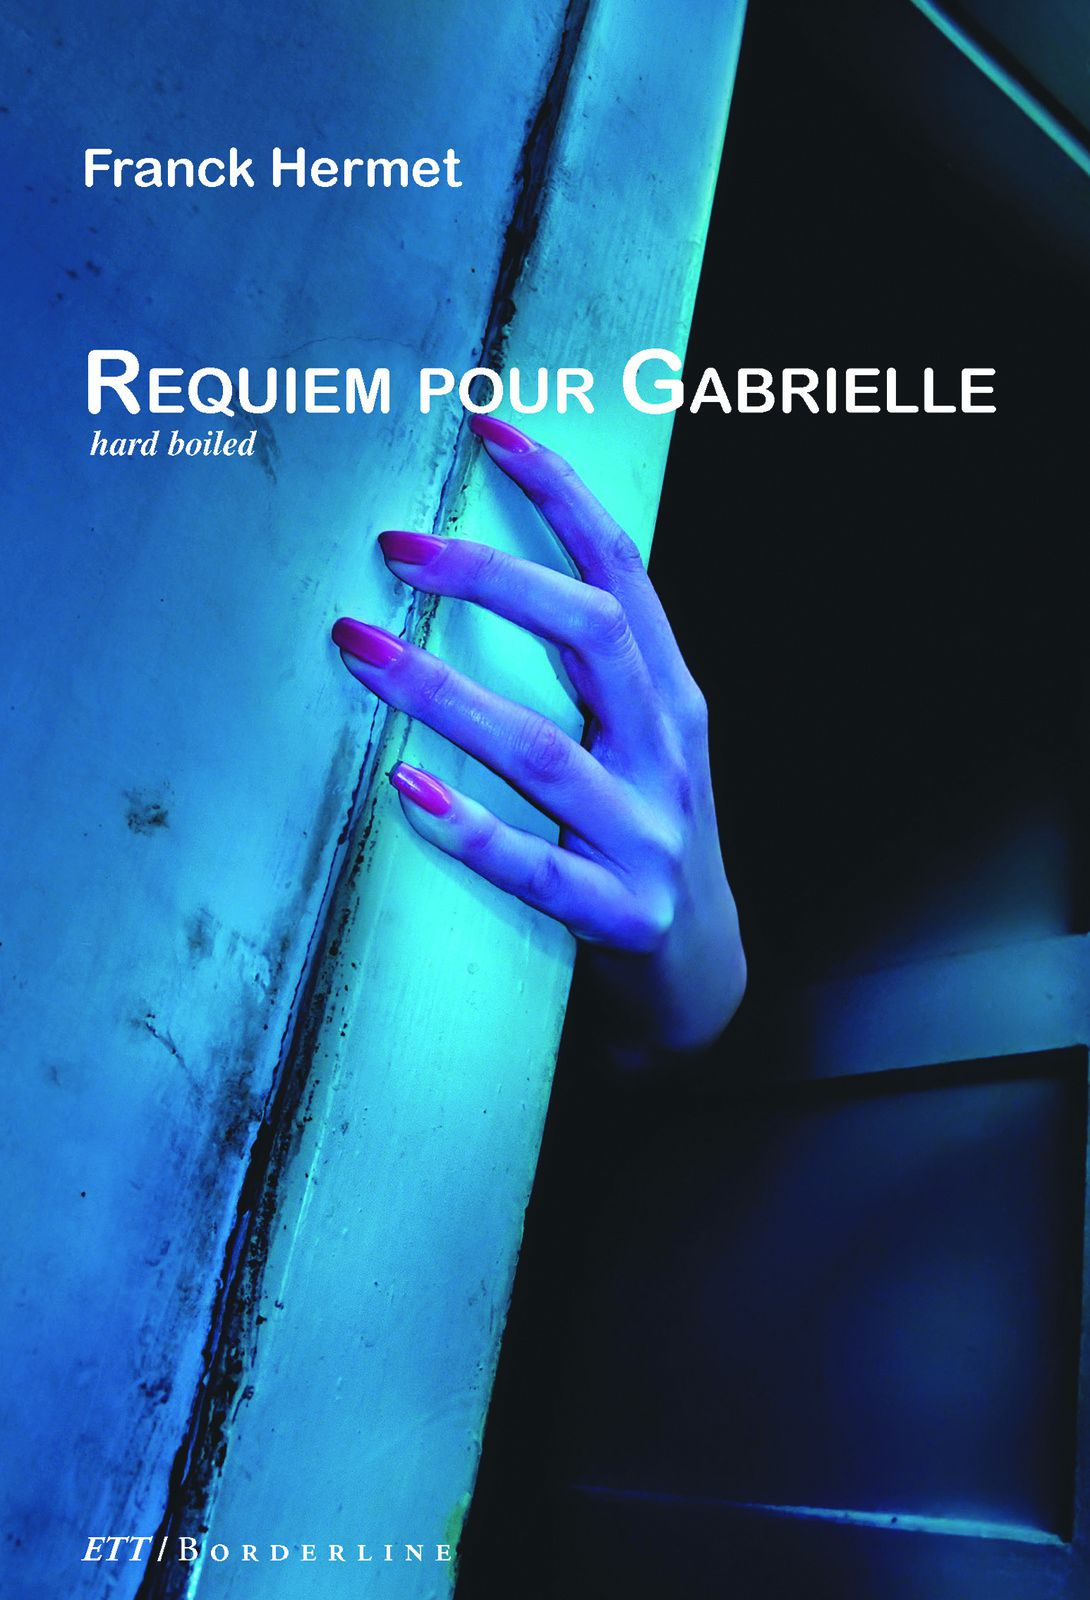 Requiem pour Gabrielle  Hard boiled ETT Collection Borderline  > 19,00 €